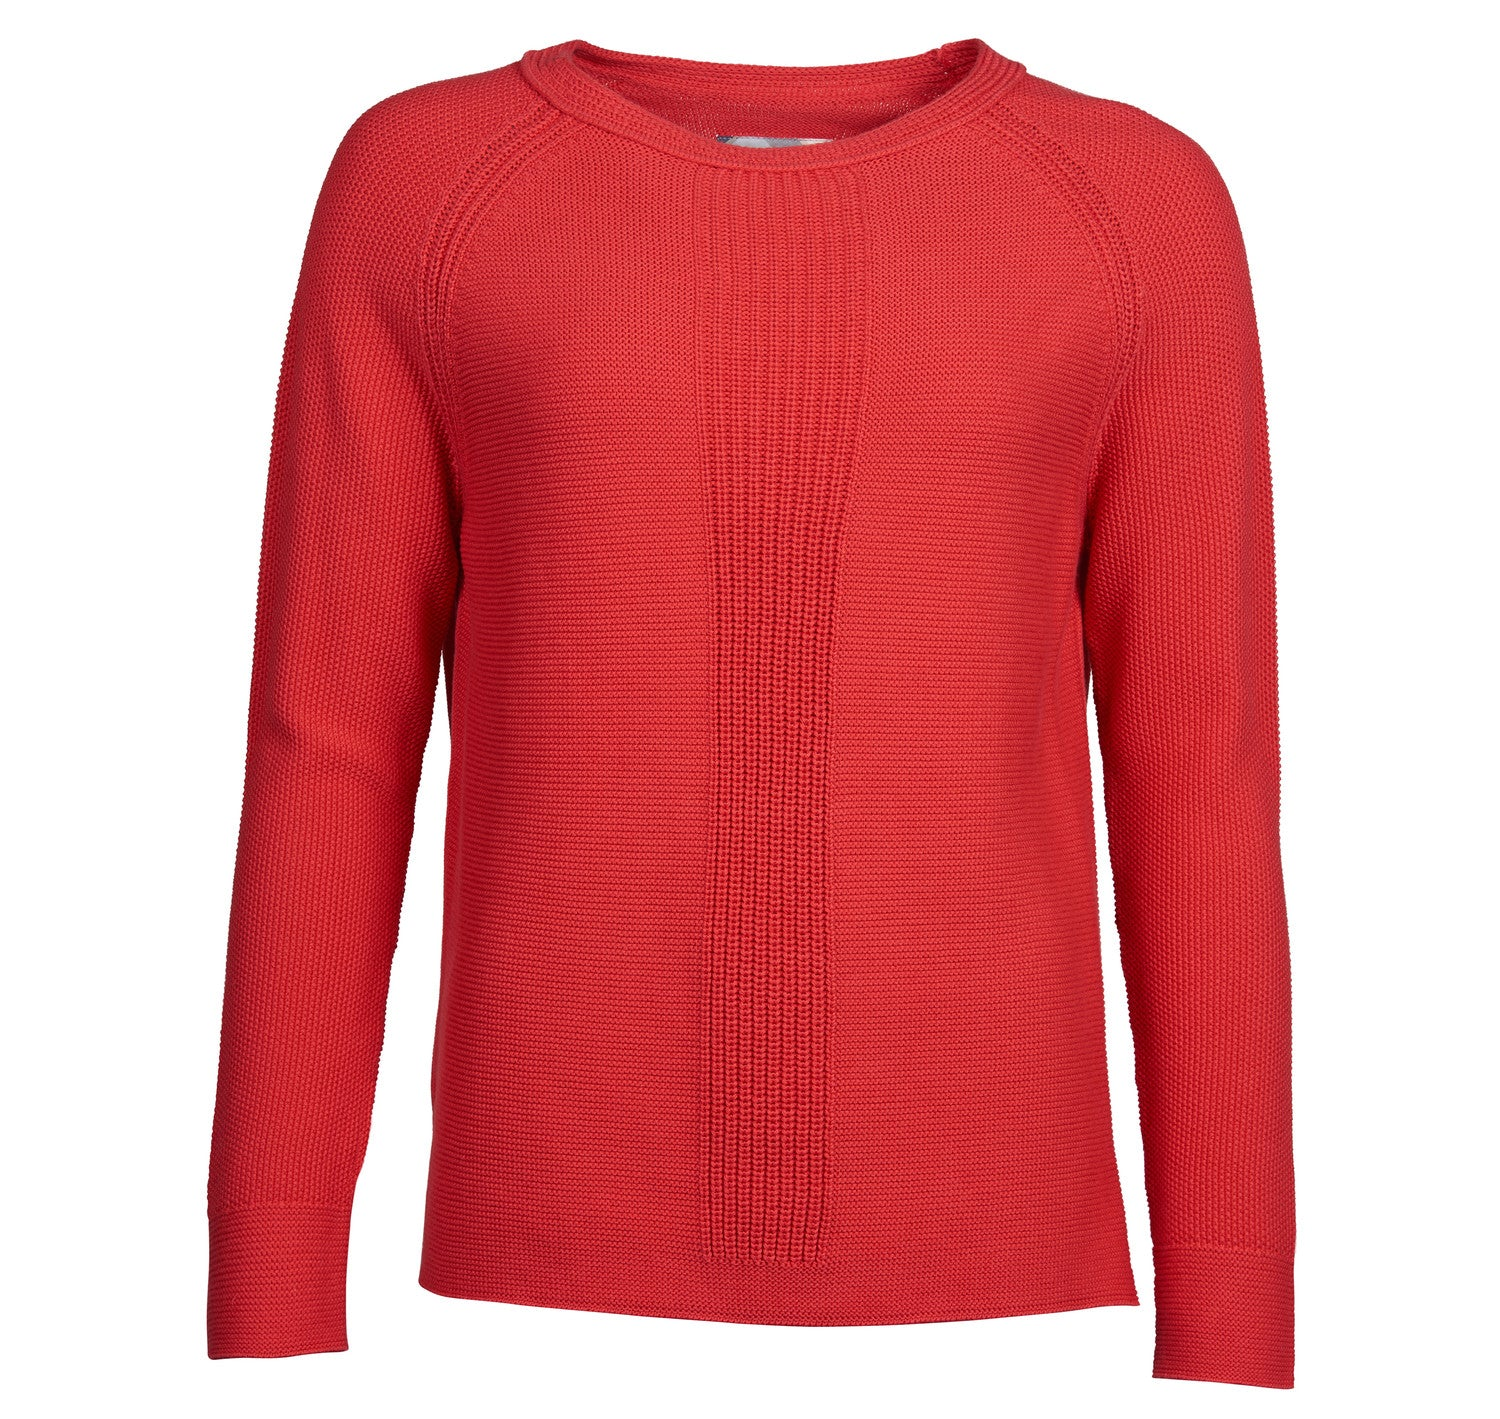 Barbour Carisbrooke Knit for Ladies in Pomegrante